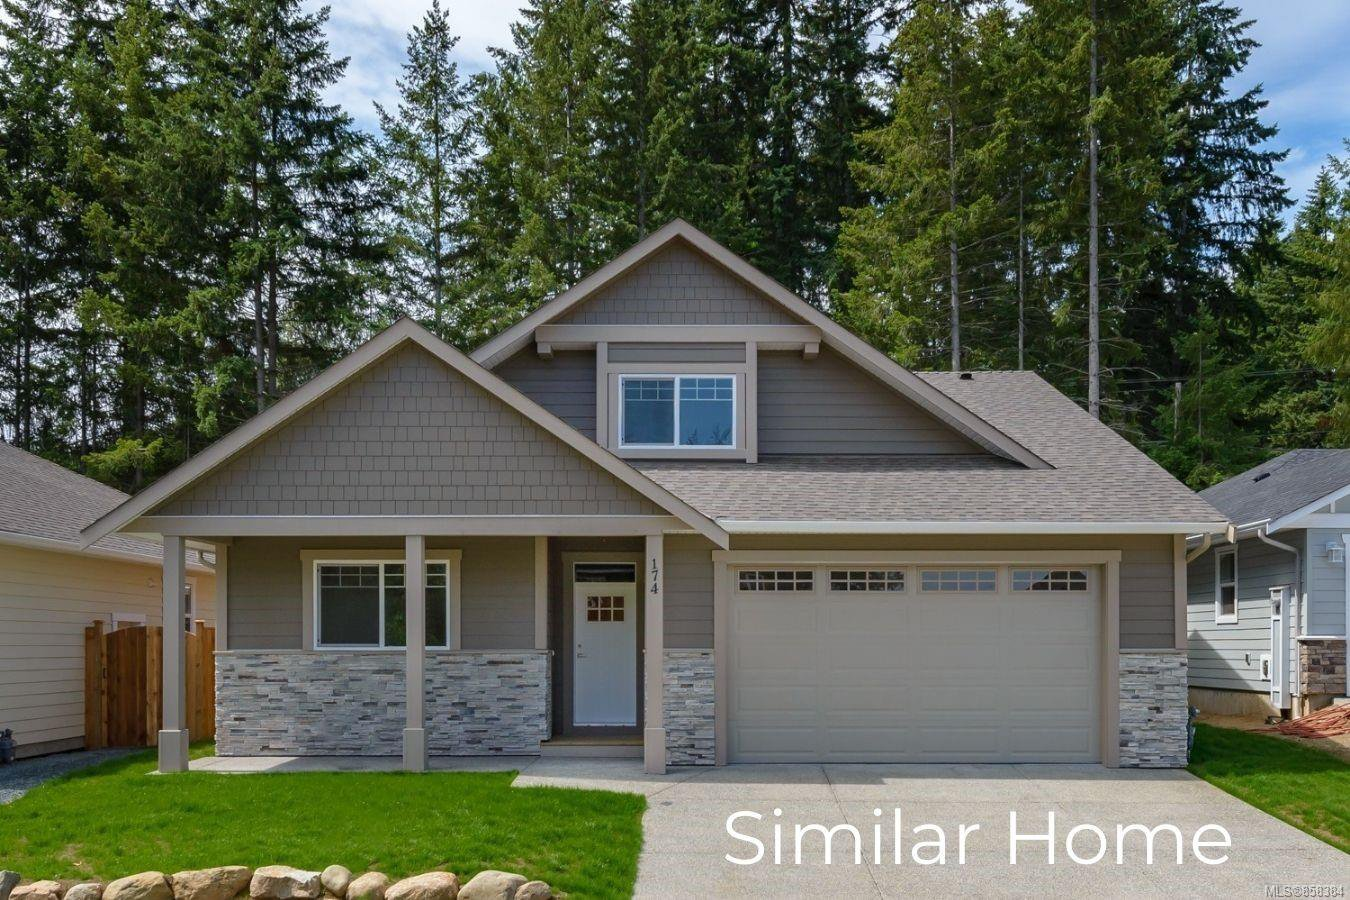 Main Photo: 2433 Brookfield Dr in : CV Courtenay City House for sale (Comox Valley)  : MLS®# 858384